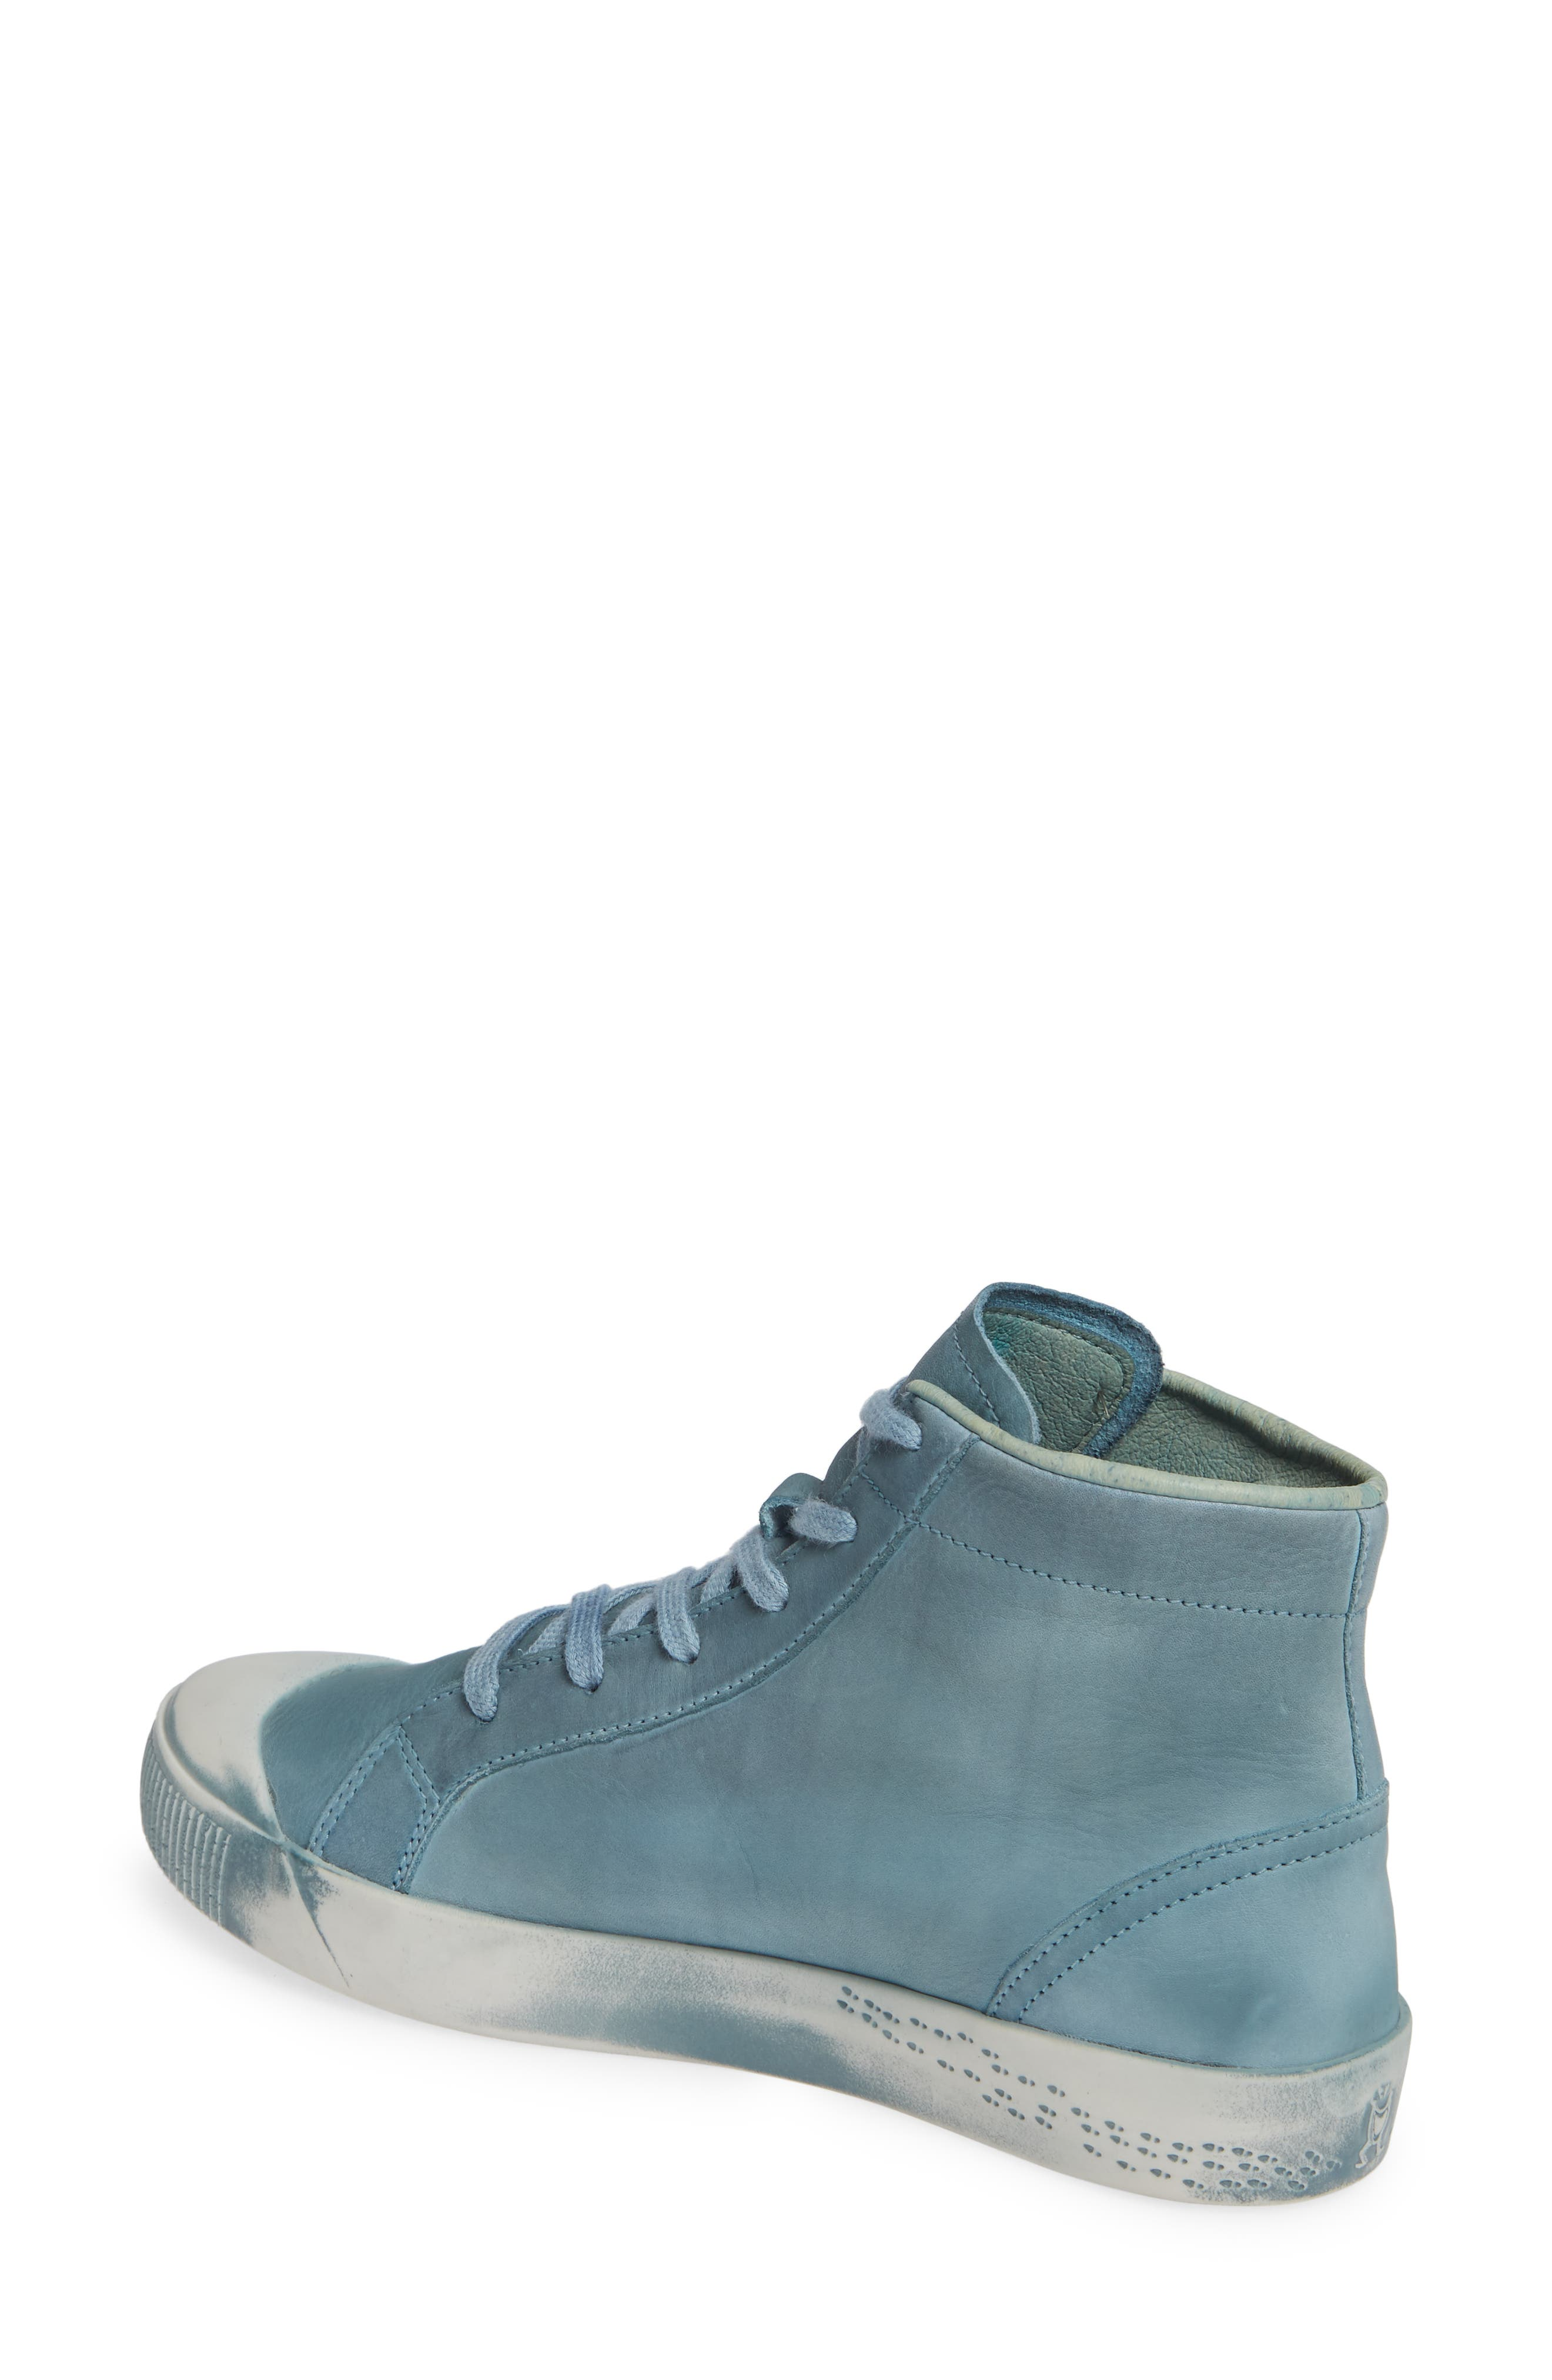 Kip High Top Sneaker,                             Alternate thumbnail 2, color,                             NUDE BLUE WASHED LEATHER